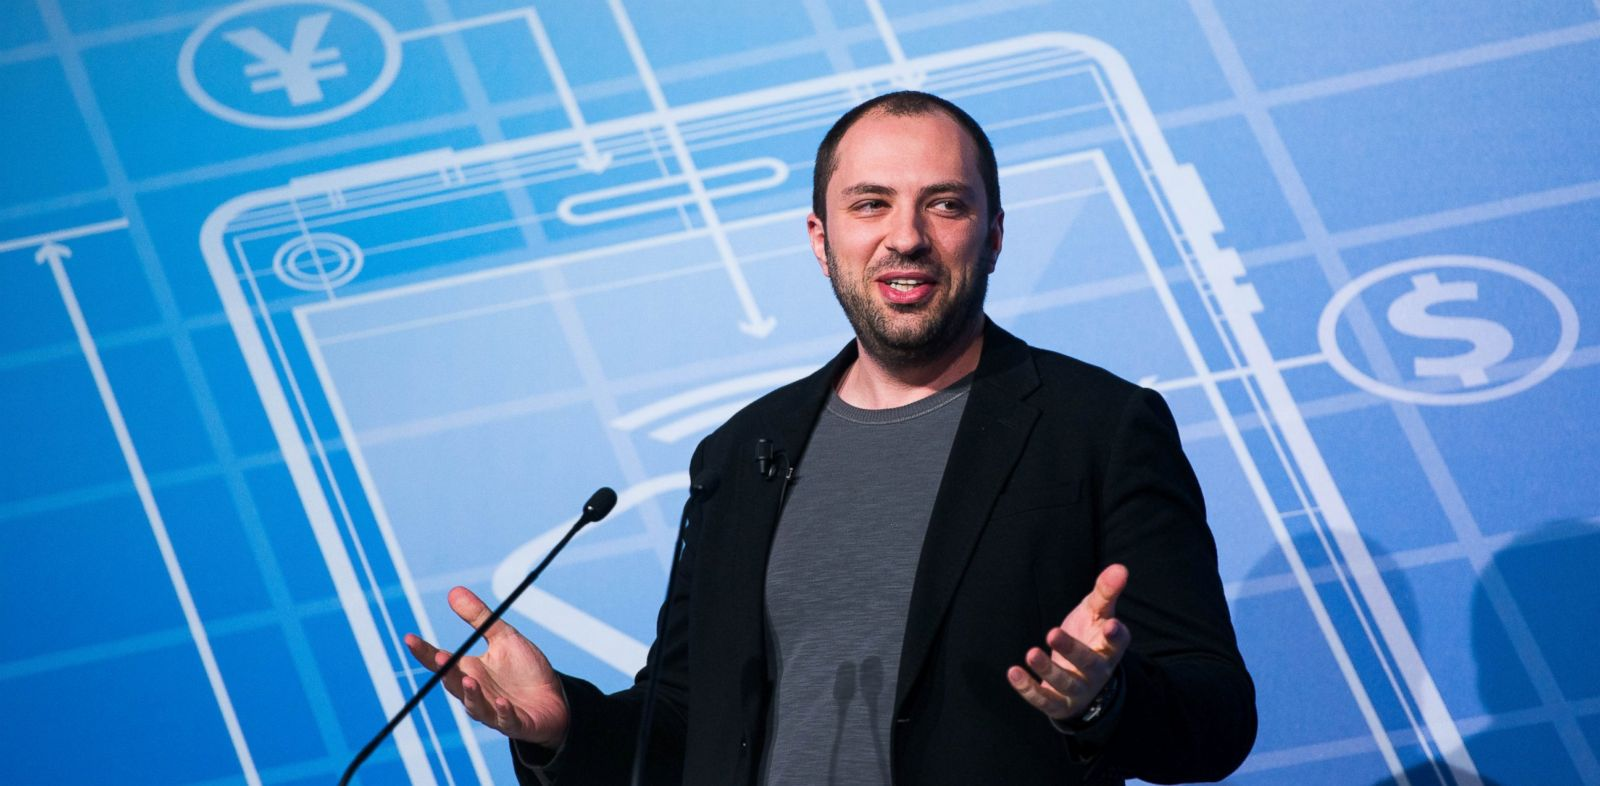 PHOTO: Whatsapp CEO Jan Koum during a Keynote conference as part of the first day of the Mobile World Congress 2014 at the Fira Gran Via complex on Feb. 24, 2014 in Barcelona, Spain.